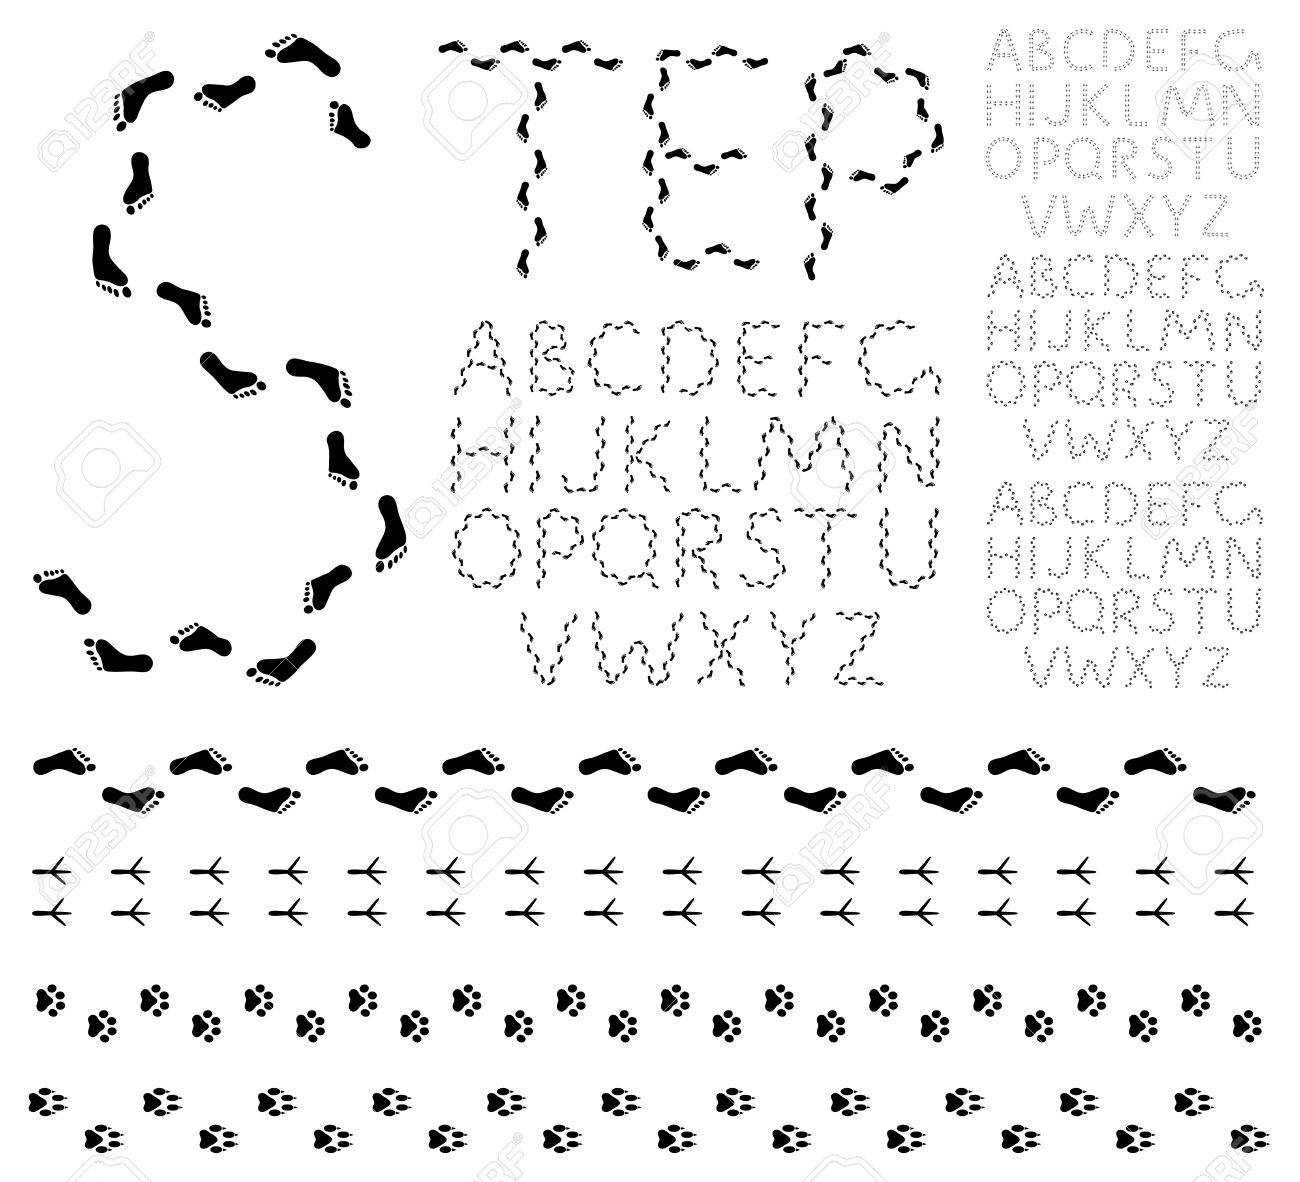 Footprint alphabet Stock Vector - 11104532